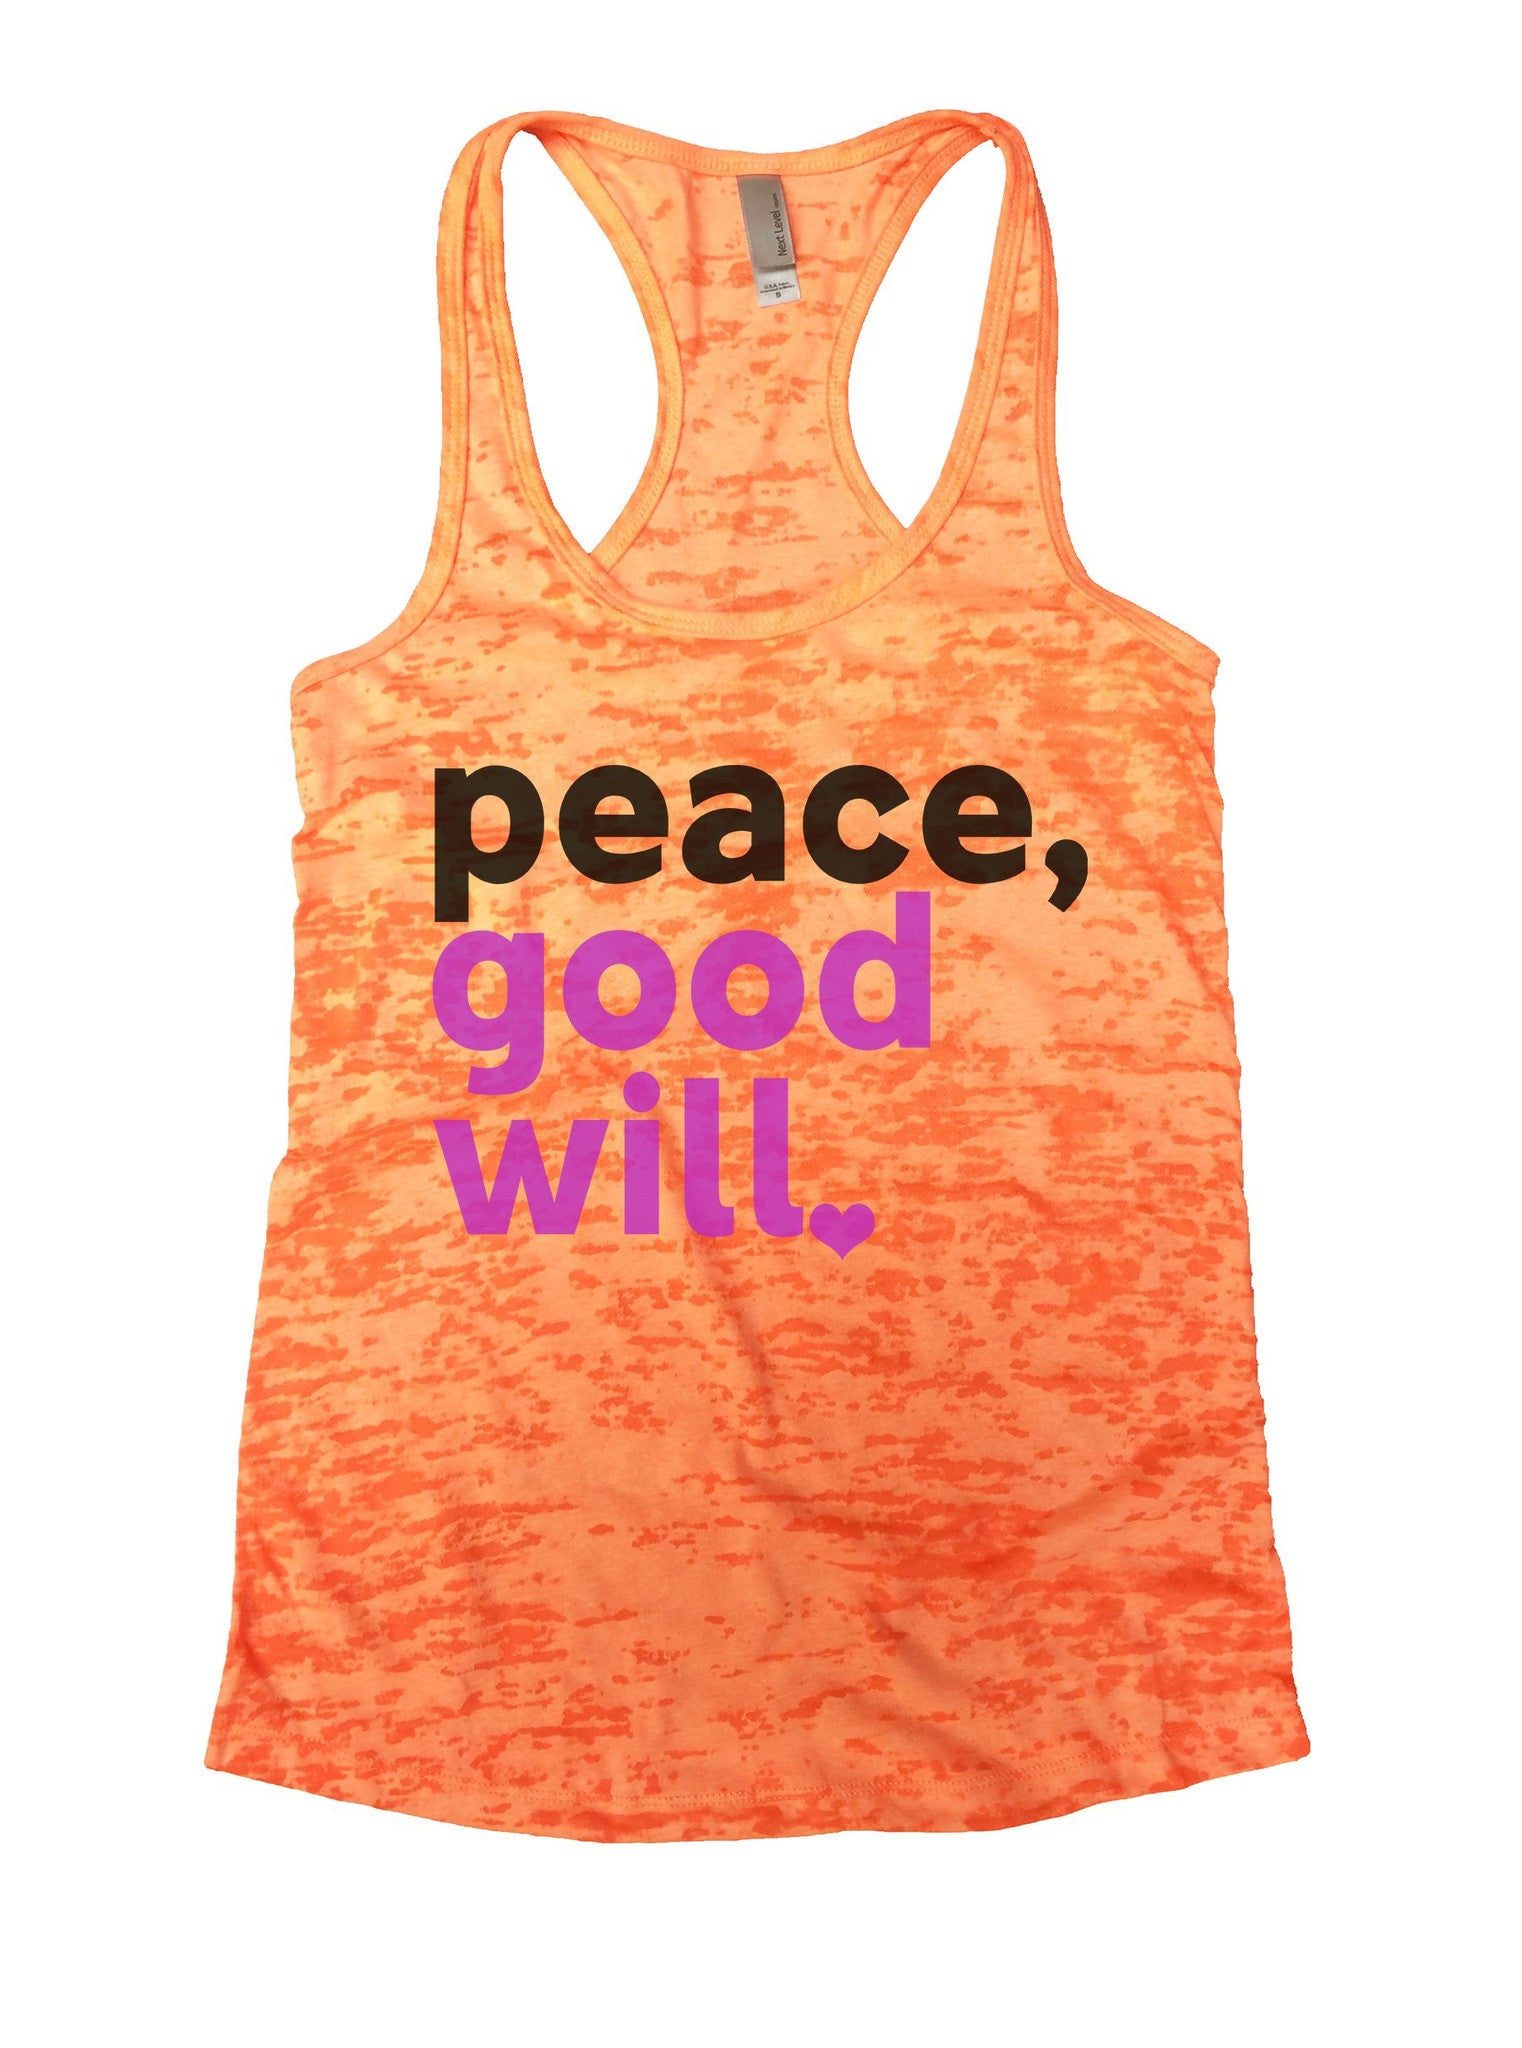 Peace, Good Will Burnout Tank Top By BurnoutTankTops.com - 1078 - Funny Shirts Tank Tops Burnouts and Triblends  - 3